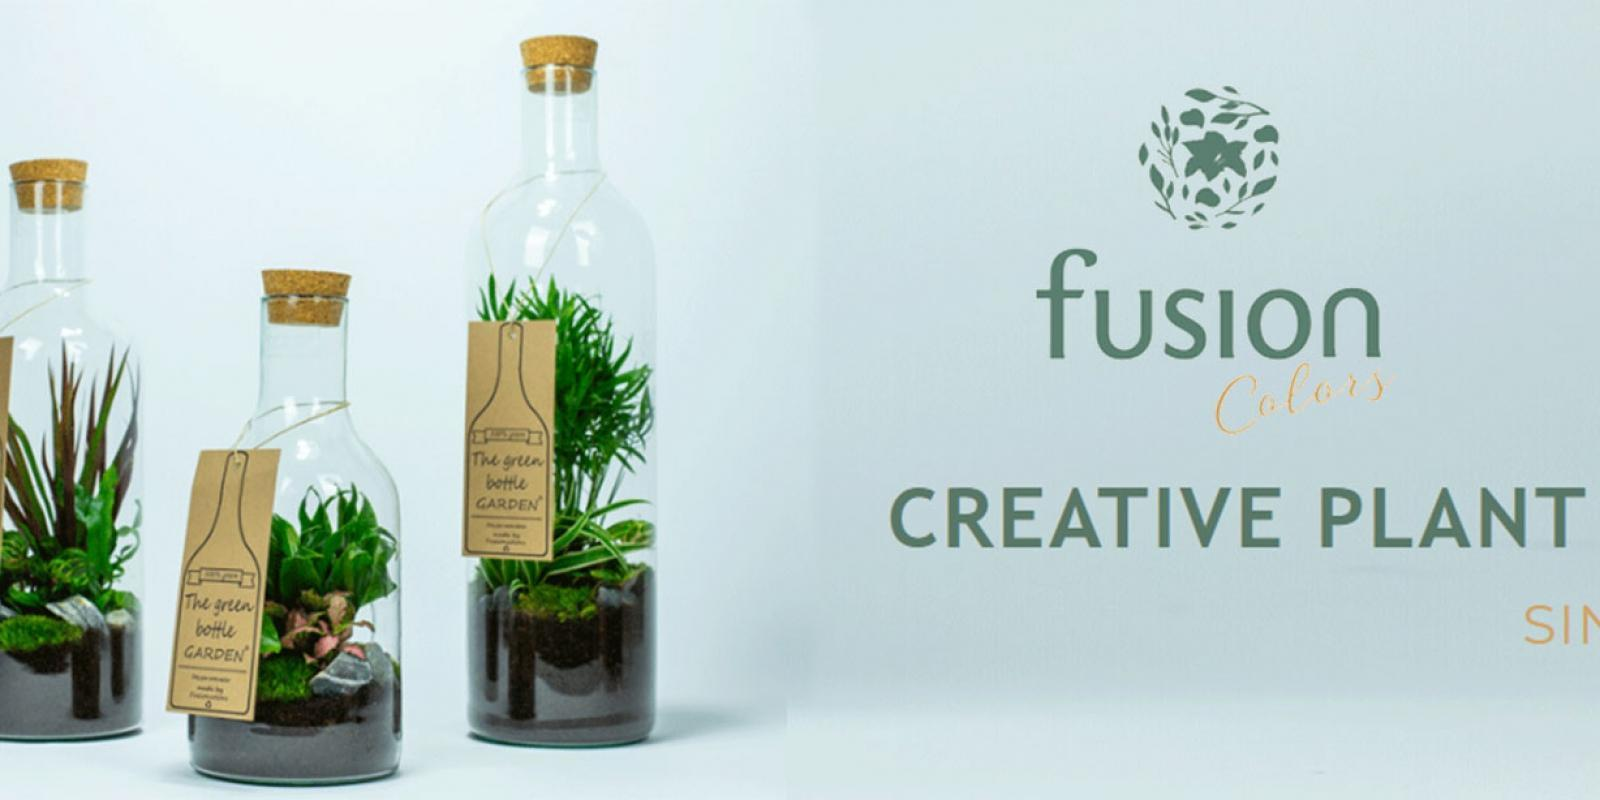 Roobos wholesale for flowers and plants: Our Fusion Colors grower